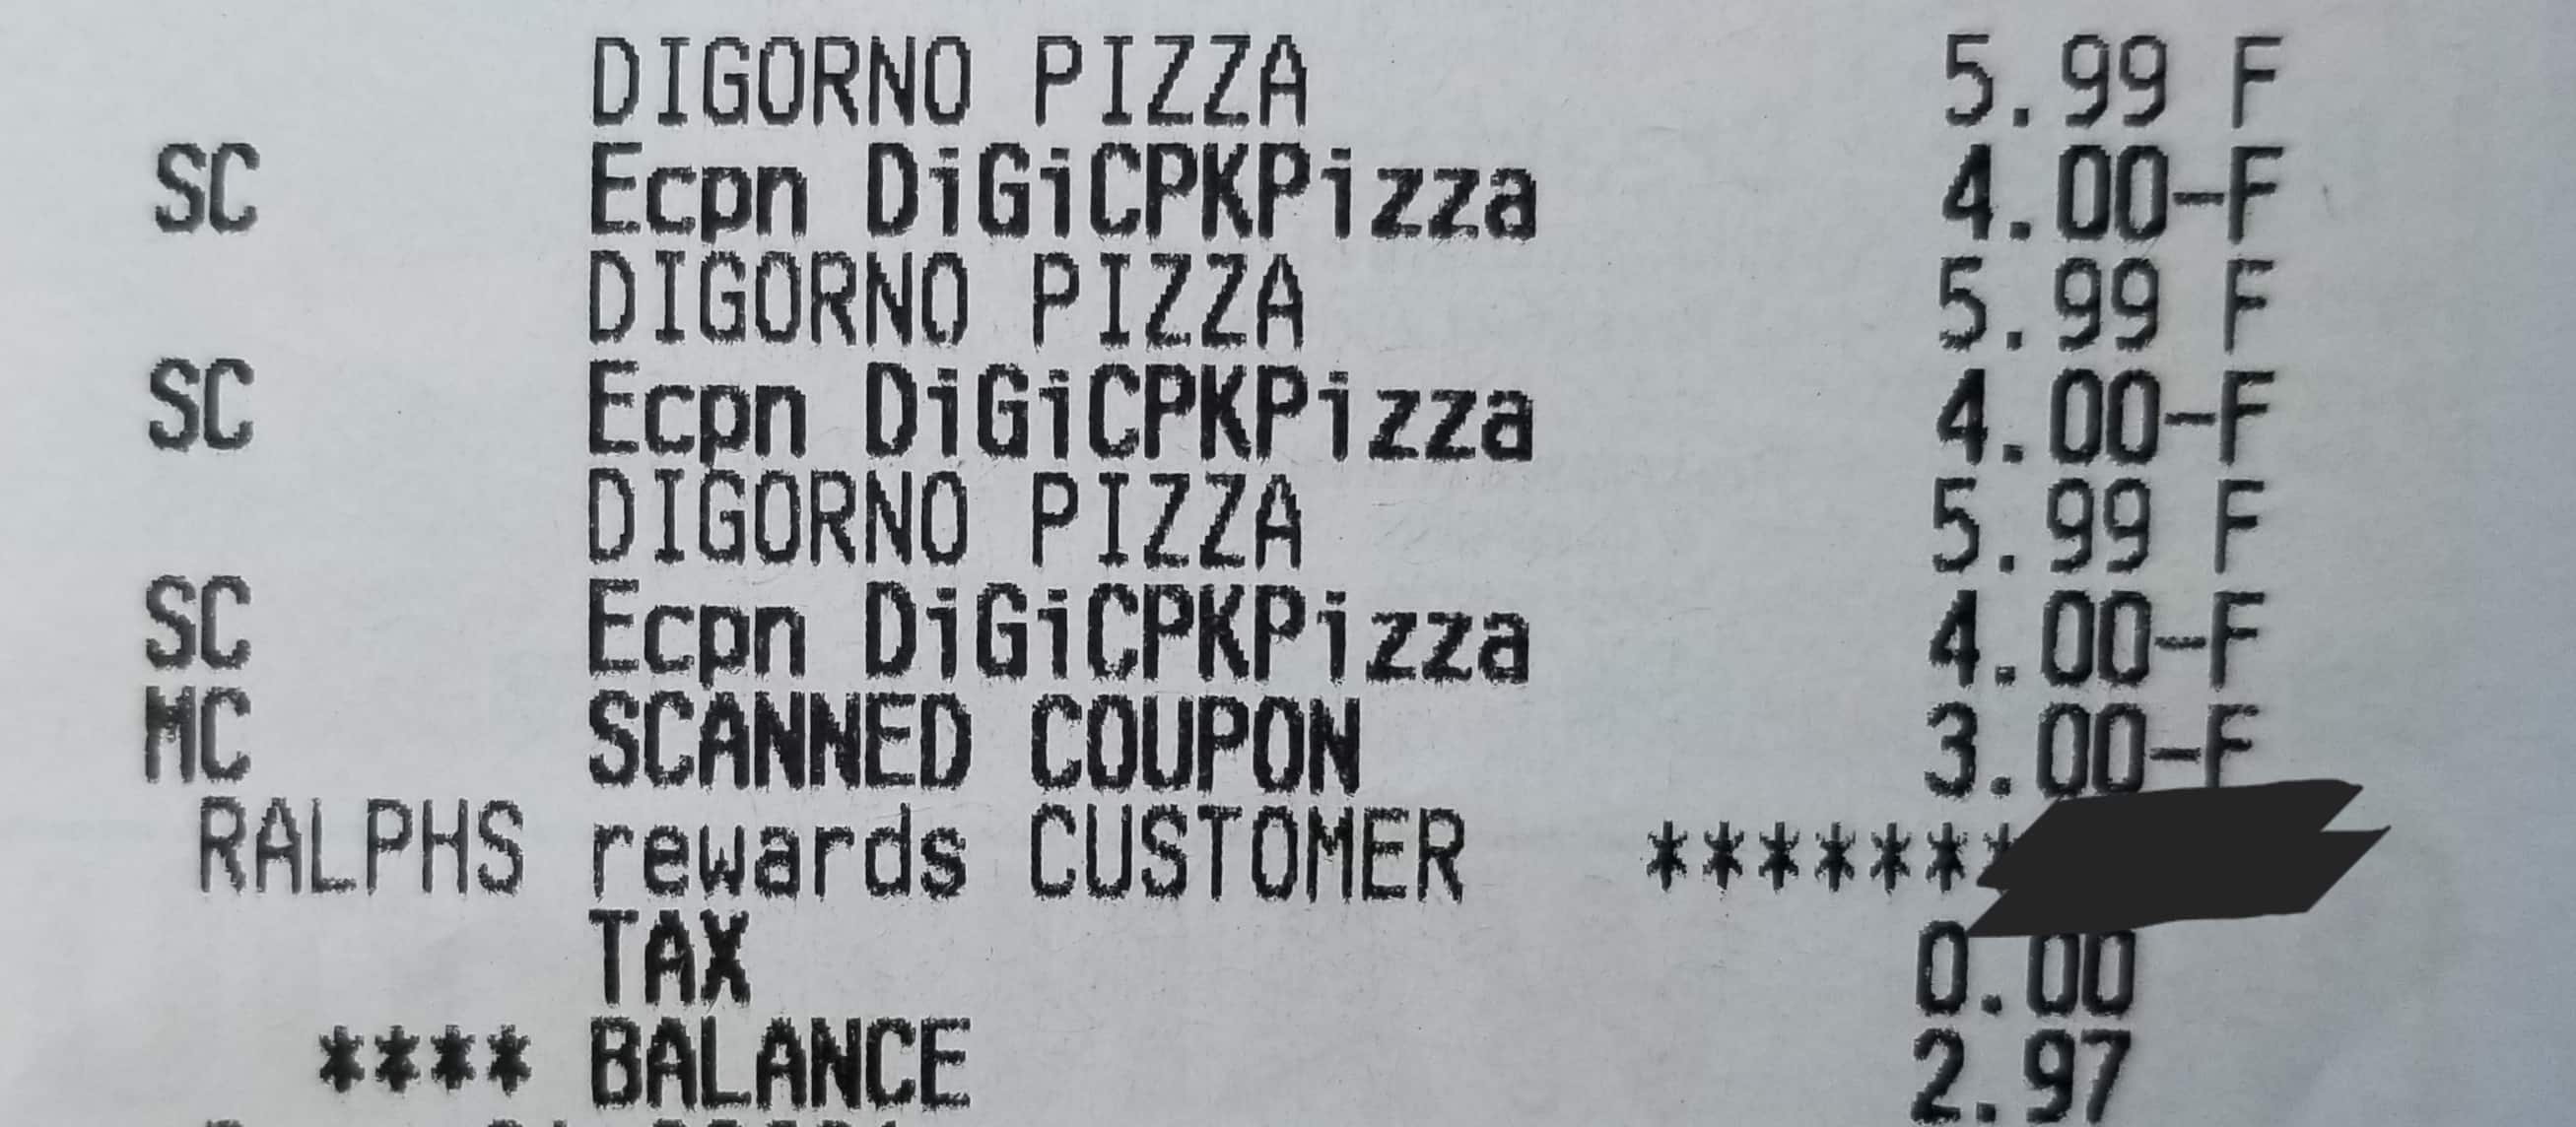 photograph about Ralphs Printable Coupons referred to as Digiorno pizza $1.99 each individual at Ralphs Grocery shops (BM